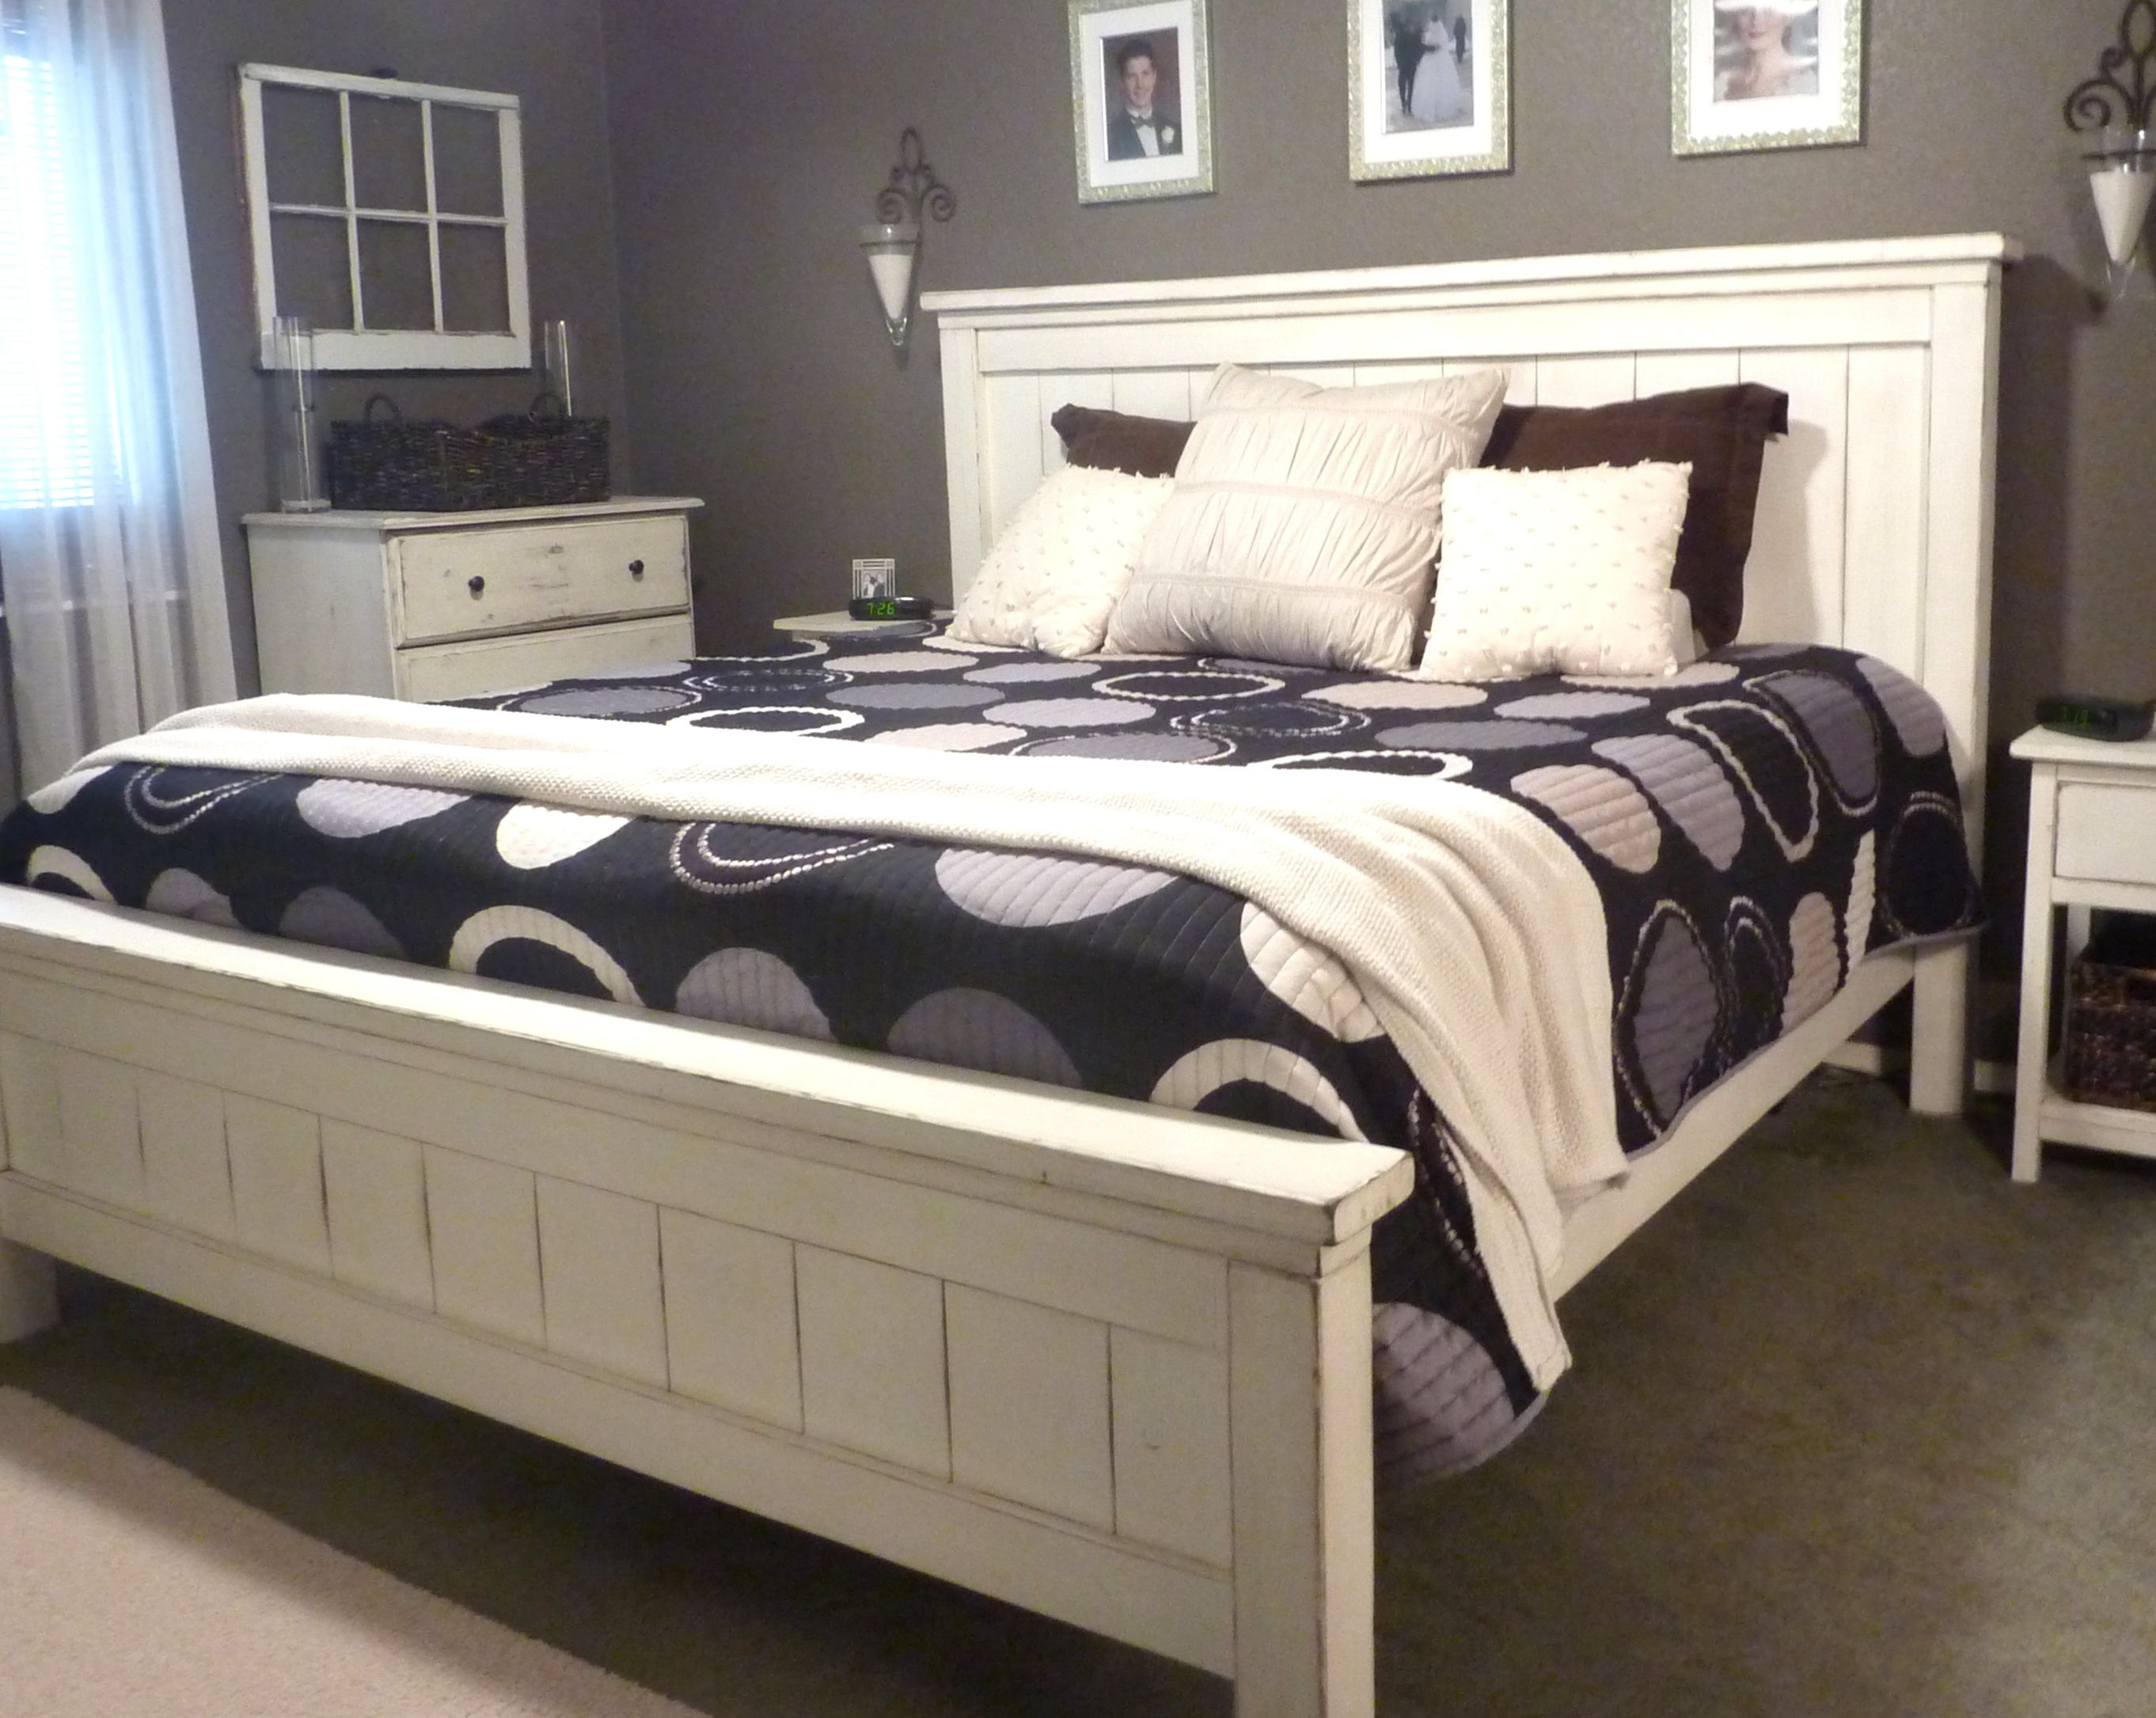 Farmhouse Bed Queen Sized King Farmhouse Bed Diy King Bed